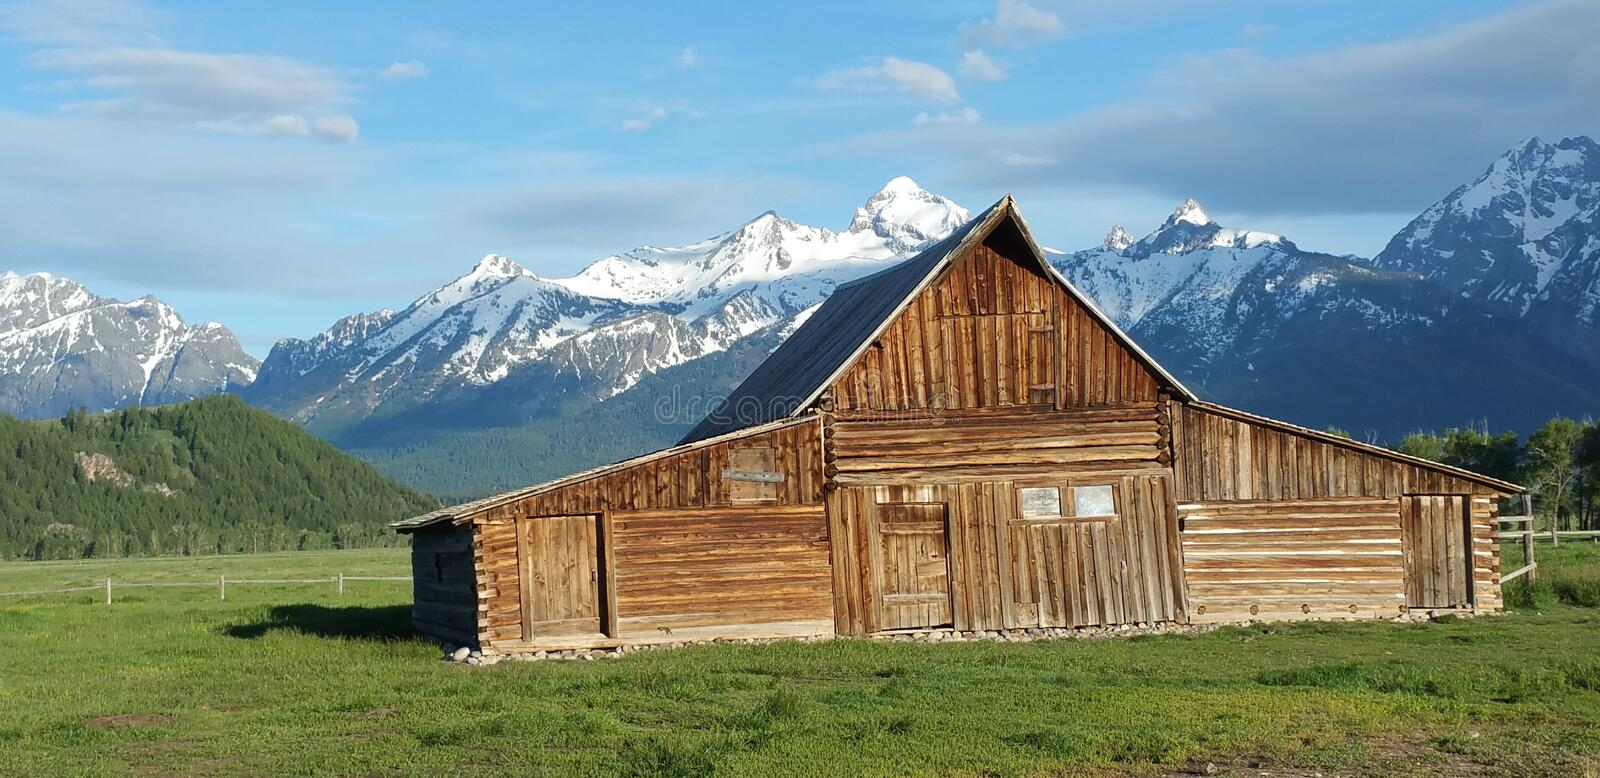 The abandoned barn in the Tetons, USA royalty free stock photography